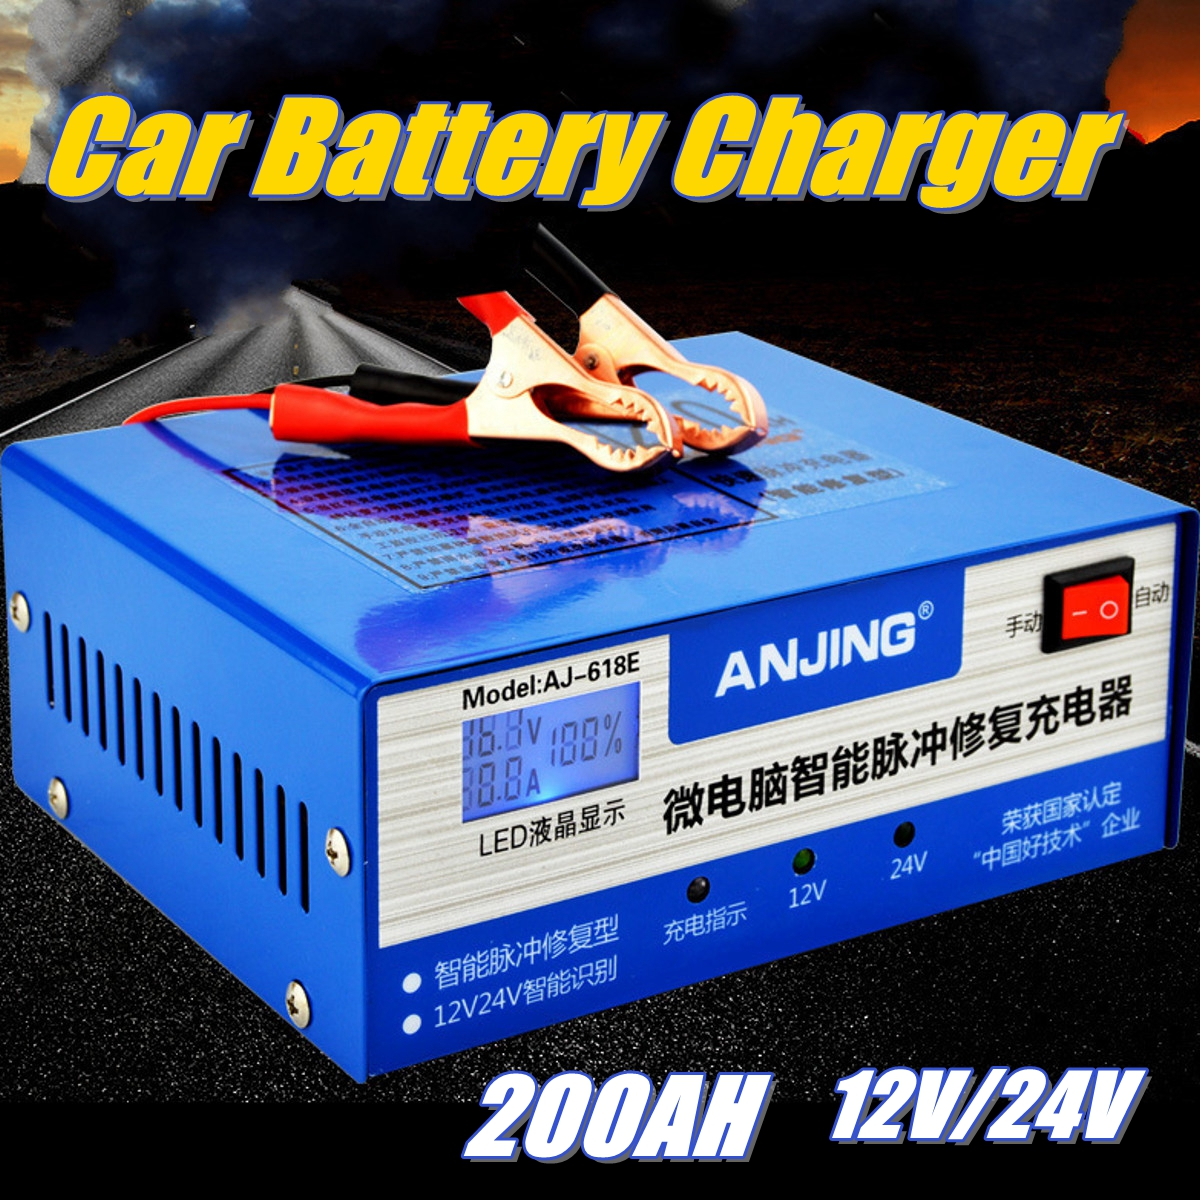 ANJING AJ-618E 130V-250V 200AH Automatic Battery Charger Intelligent Pulse Repair Battery Charger 12/24VANJING AJ-618E 130V-250V 200AH Automatic Battery Charger Intelligent Pulse Repair Battery Charger 12/24V